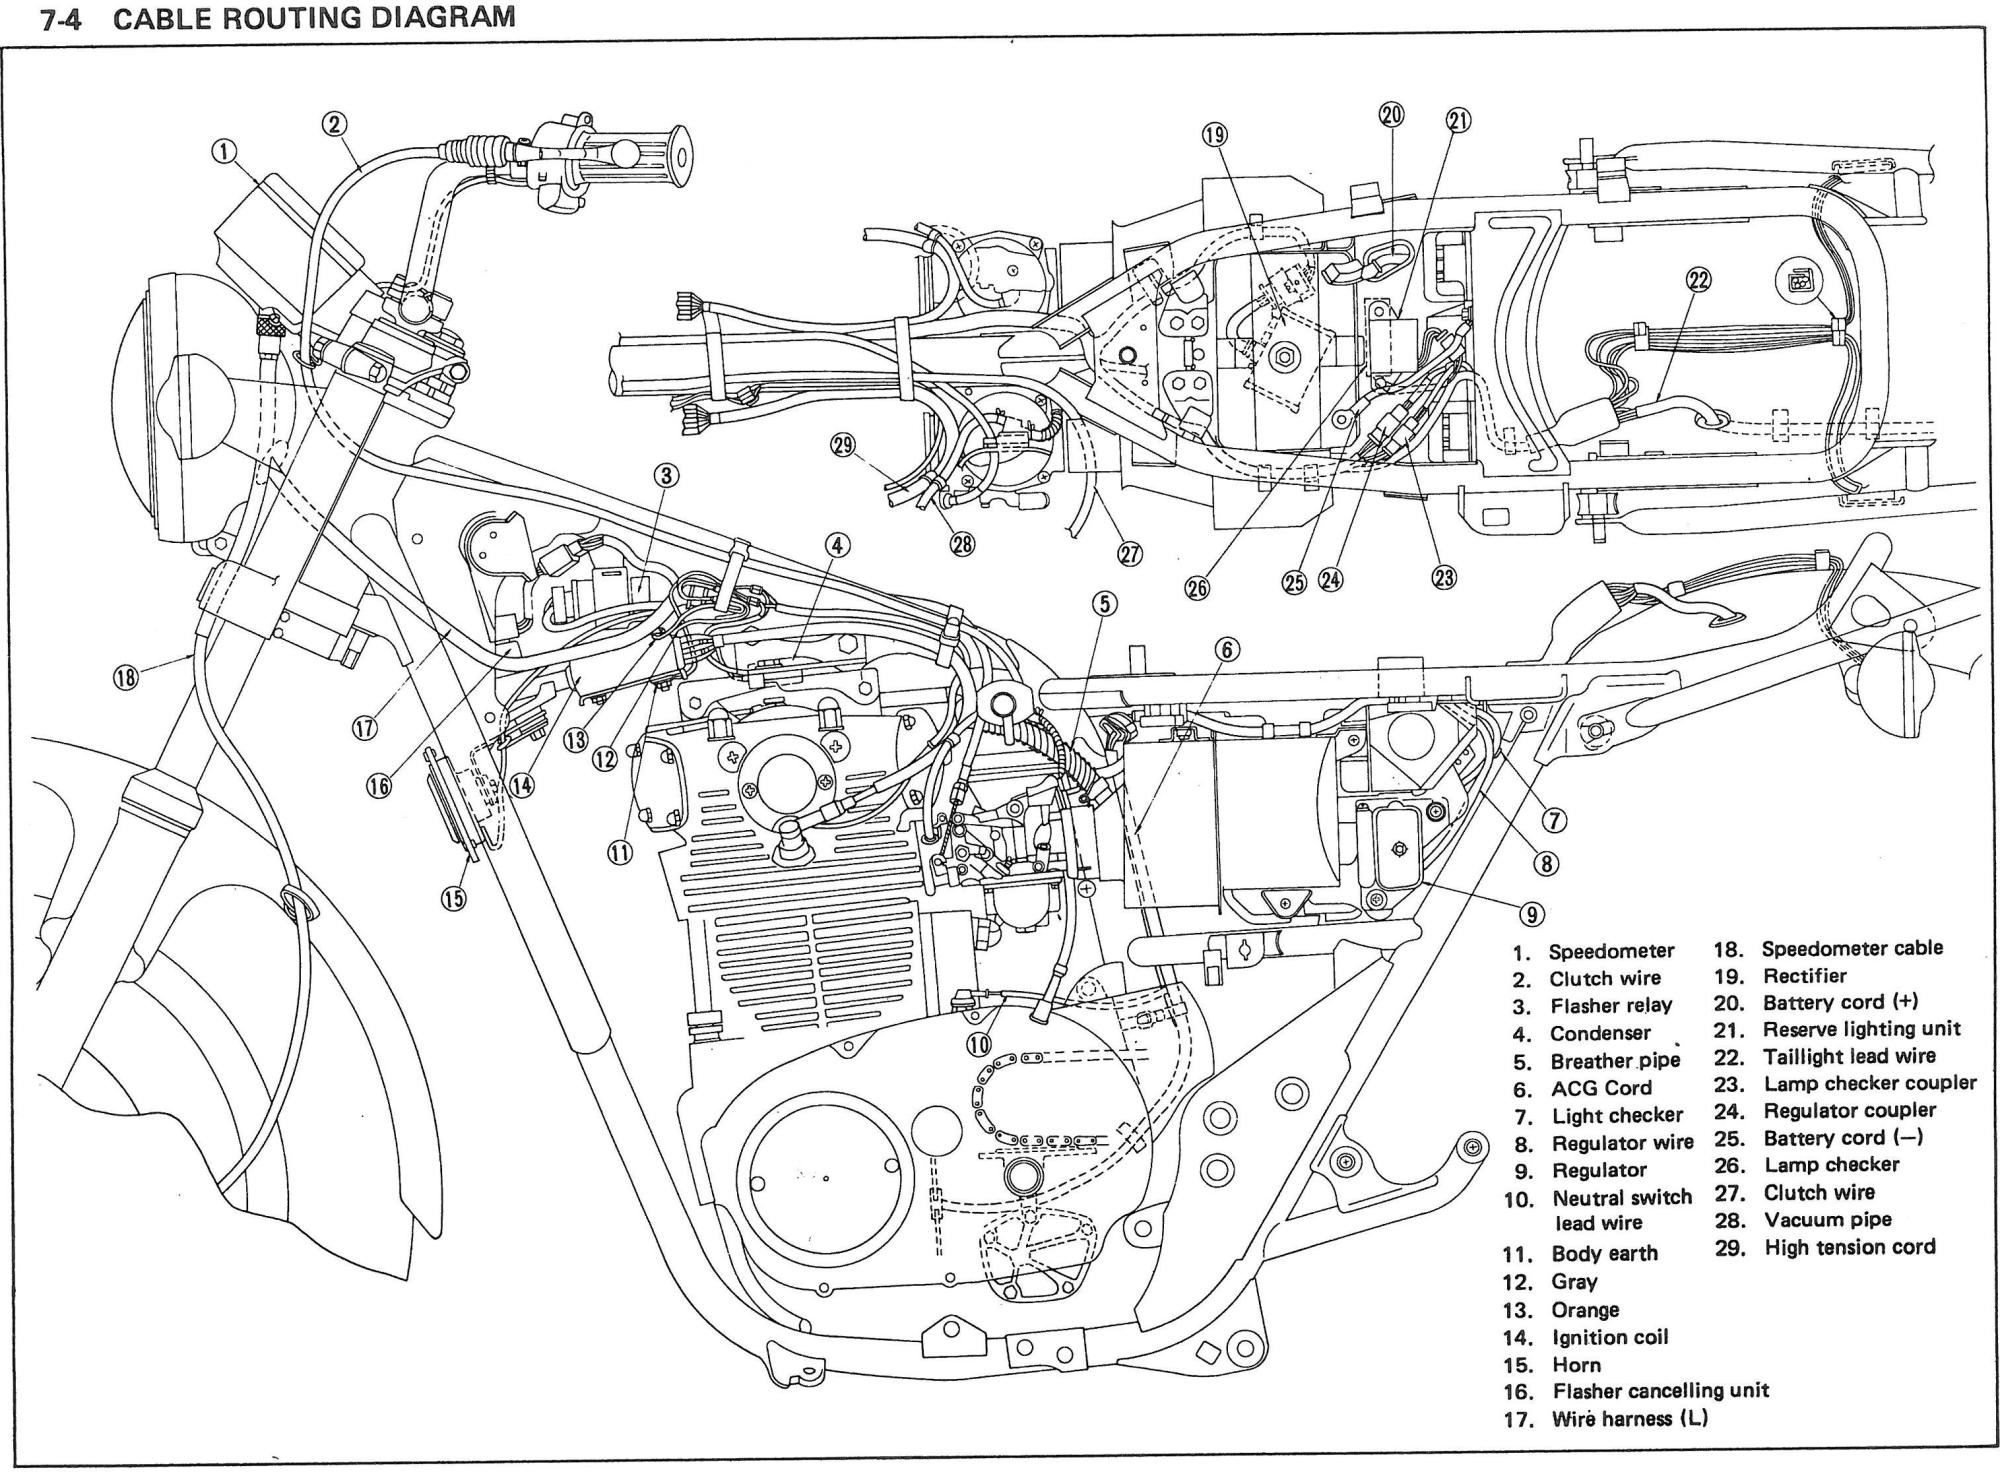 hight resolution of tags 1986 harley sportster wiring diagram harley davidson sportster wiring diagram custom motorcycle wiring 2001 sportster wiring diagram 2004 sportster